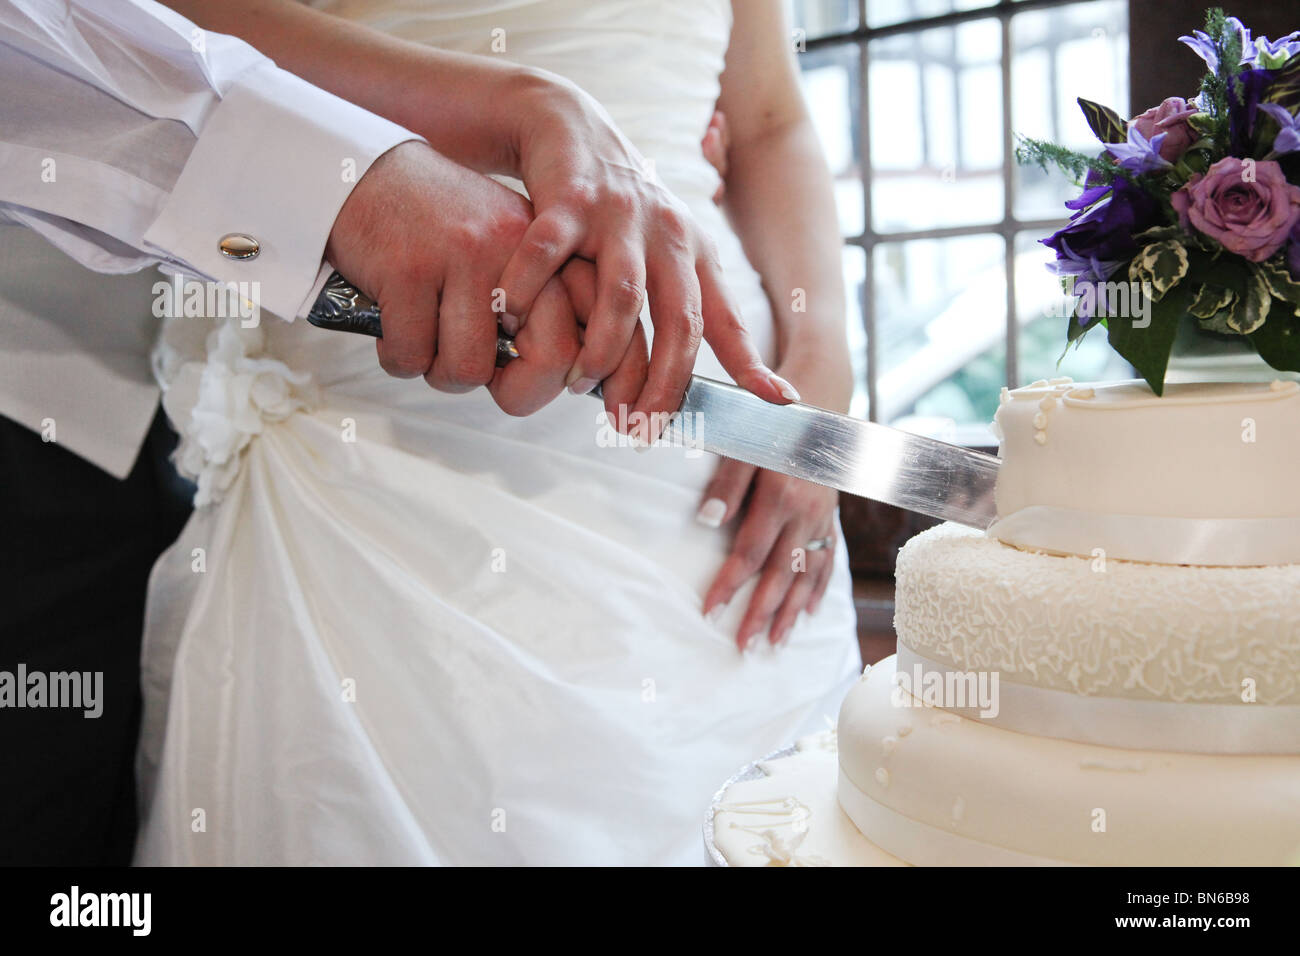 Bride and groom holding knife and cutting wedding white tiered cake bride and groom holding knife and cutting wedding white tiered cake on wedding day uk junglespirit Image collections